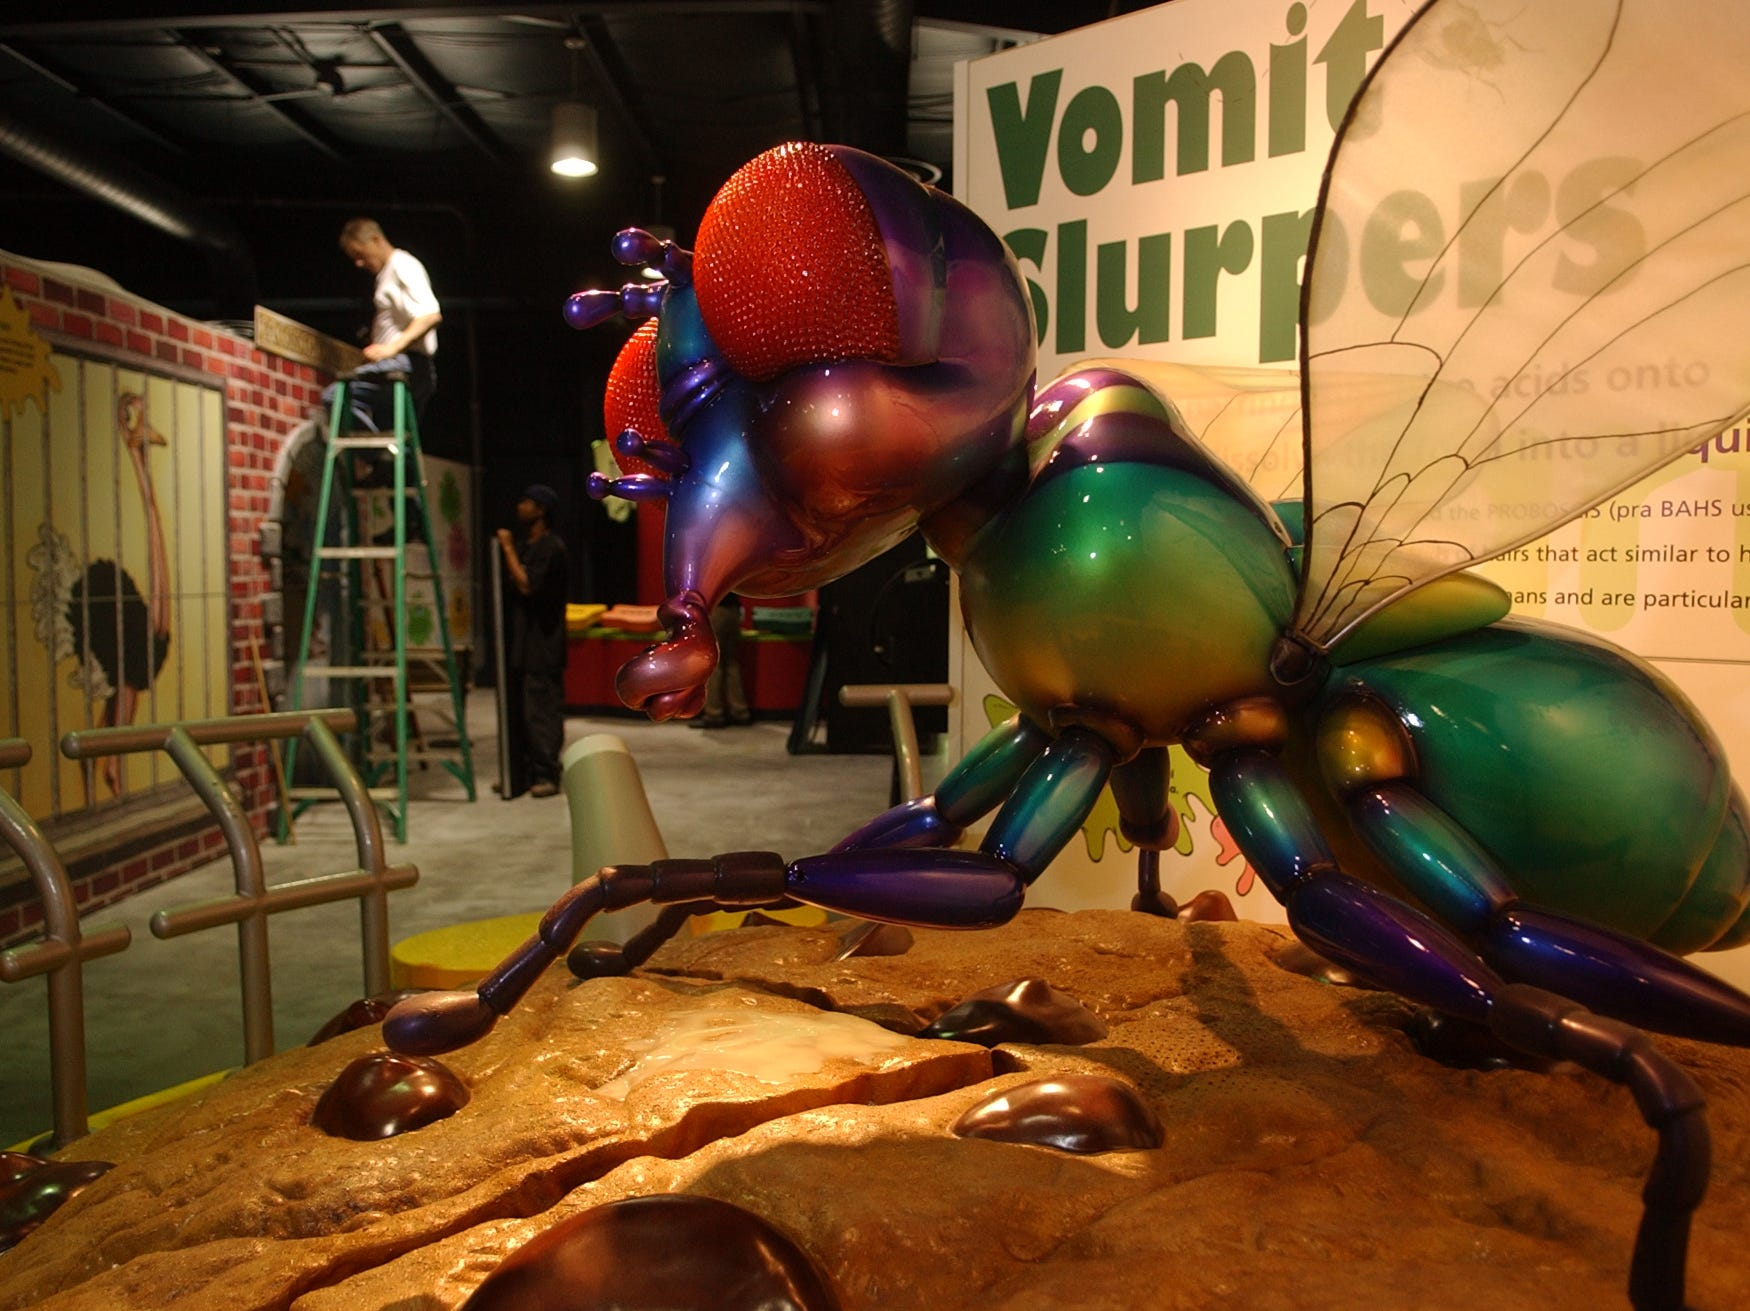 "A.J. Canesi of Advanced Animations works from a ladder while installing Knoxville Zoo's new exhibit Animal Grossology which is being billed as the ""yuckiest exhibit at the zoo."" In the foreground is a giant animated fly on a large chocolate chip cookie who interactively describes his grossest tendencies."